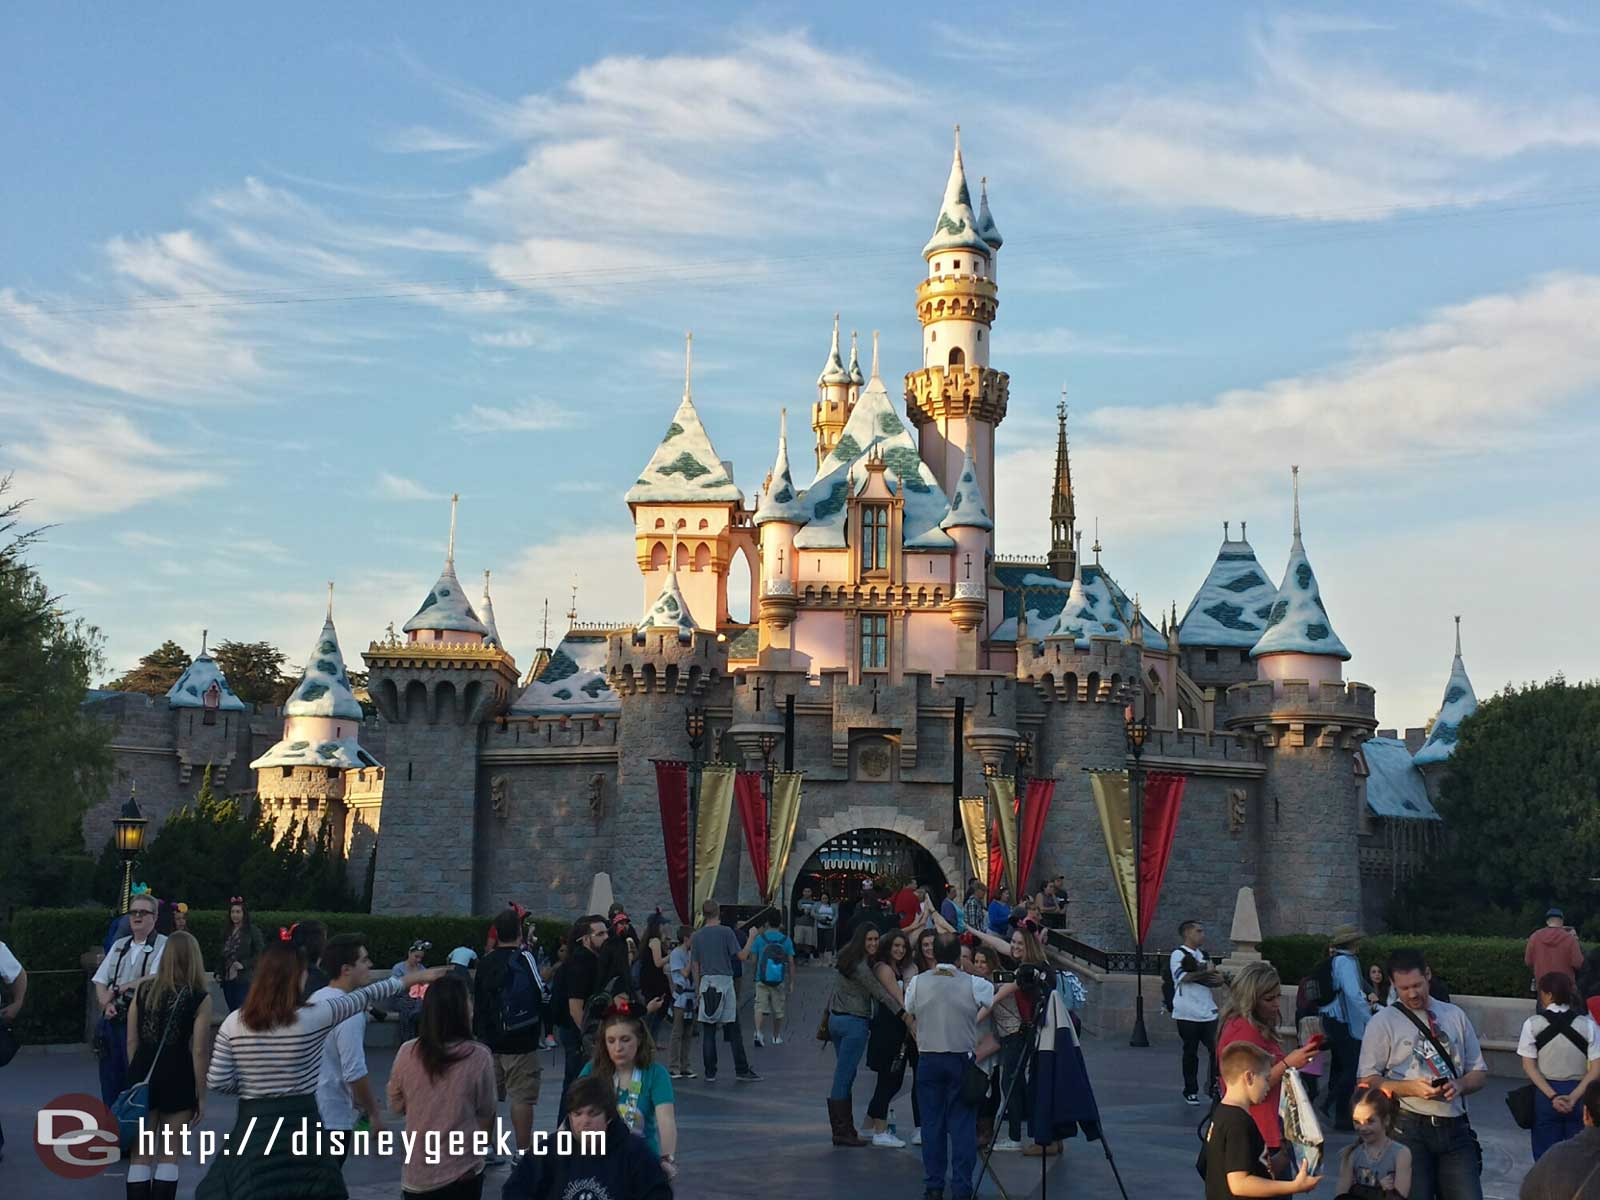 Sleeping Beauty Castle still has snow #Disneyland